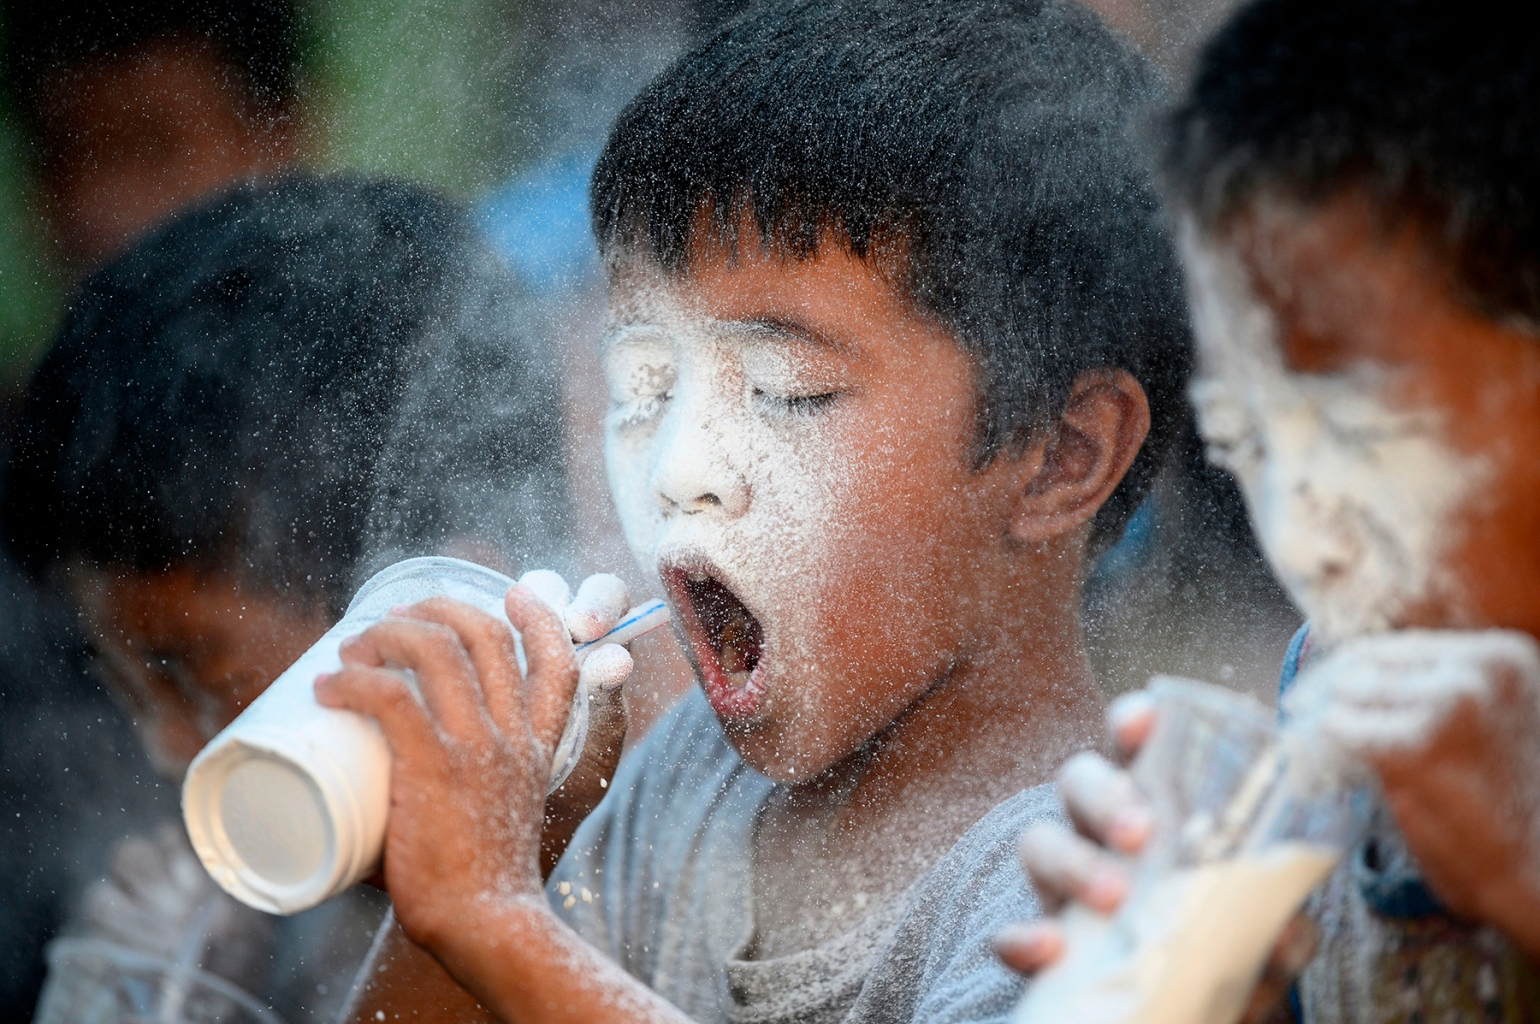 Boys try to empty cups filled with flour by blowing through a straw in a parlor game during the annual Feast Day of St. Rita of Cascia in Manila, Philippines, on May 19. NOEL CELIS/AFP/Getty Images